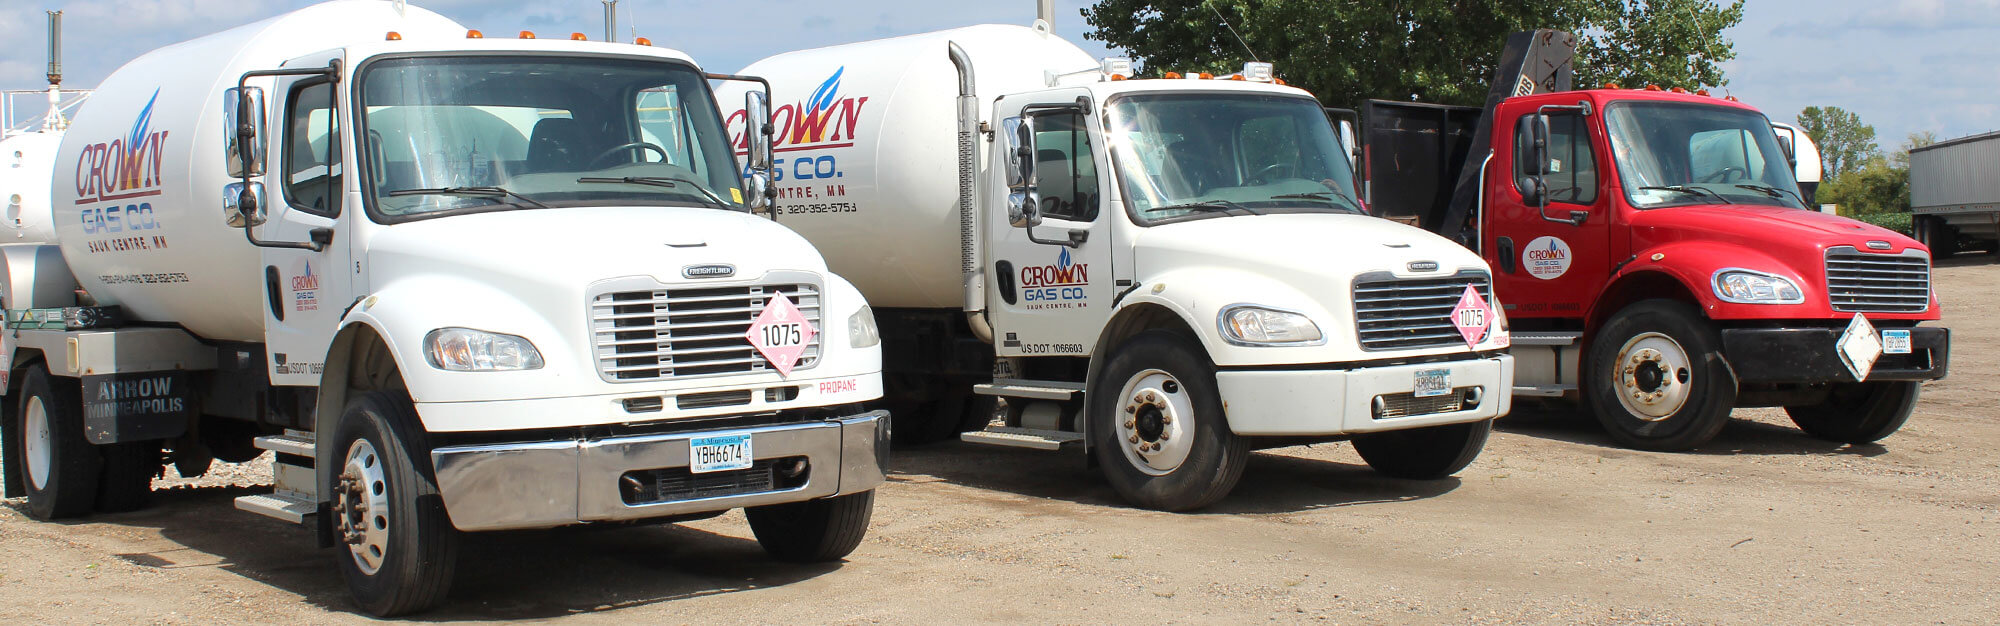 Row of Crown Gas propane delivery and service trucks